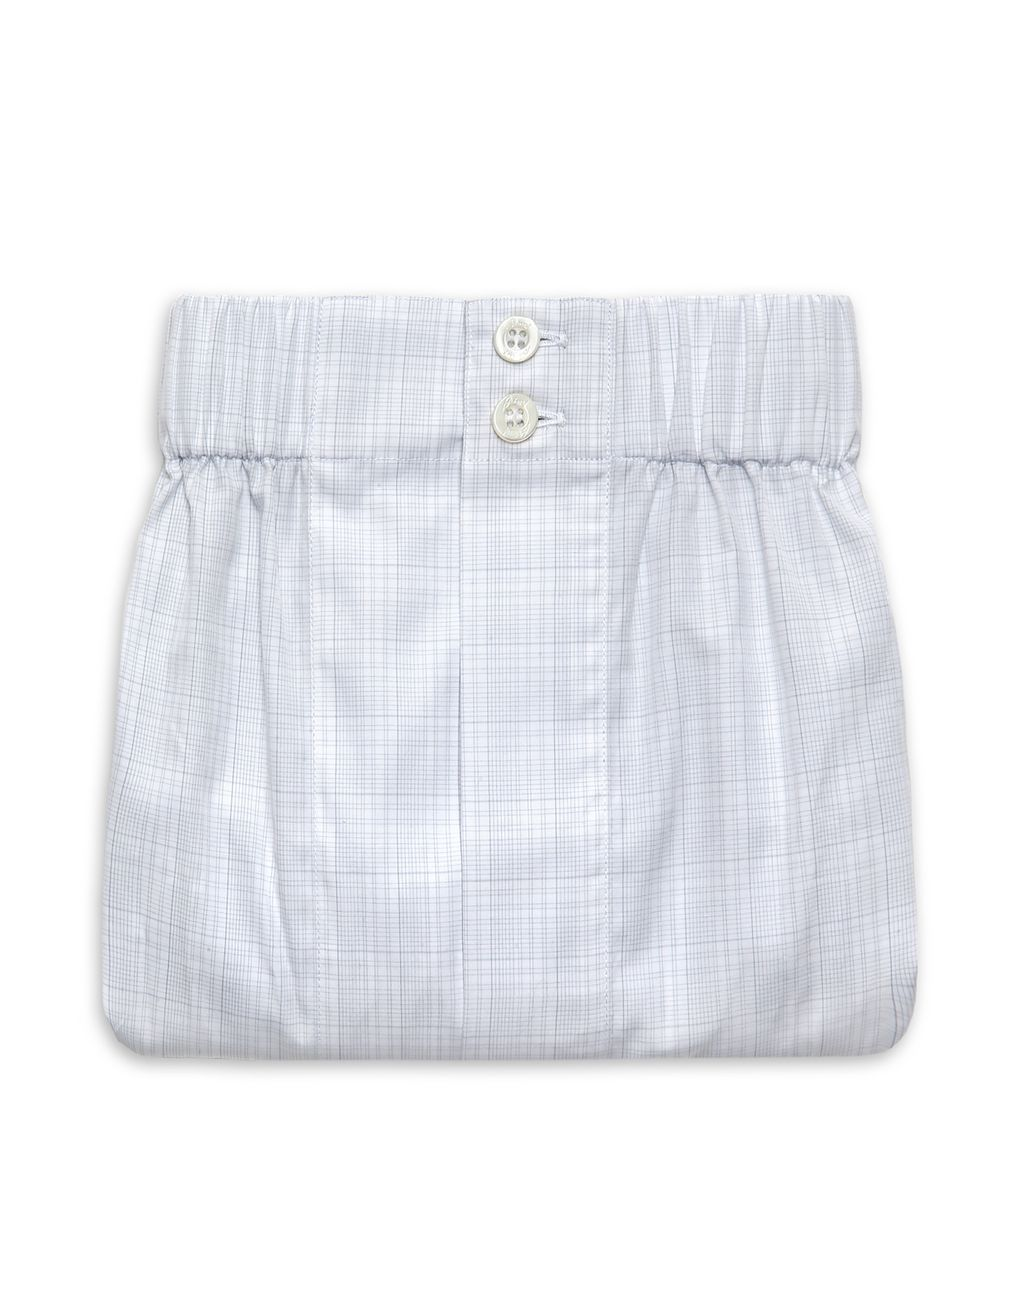 BRIONI Bluette and White Checked Underwear Underwear Man r